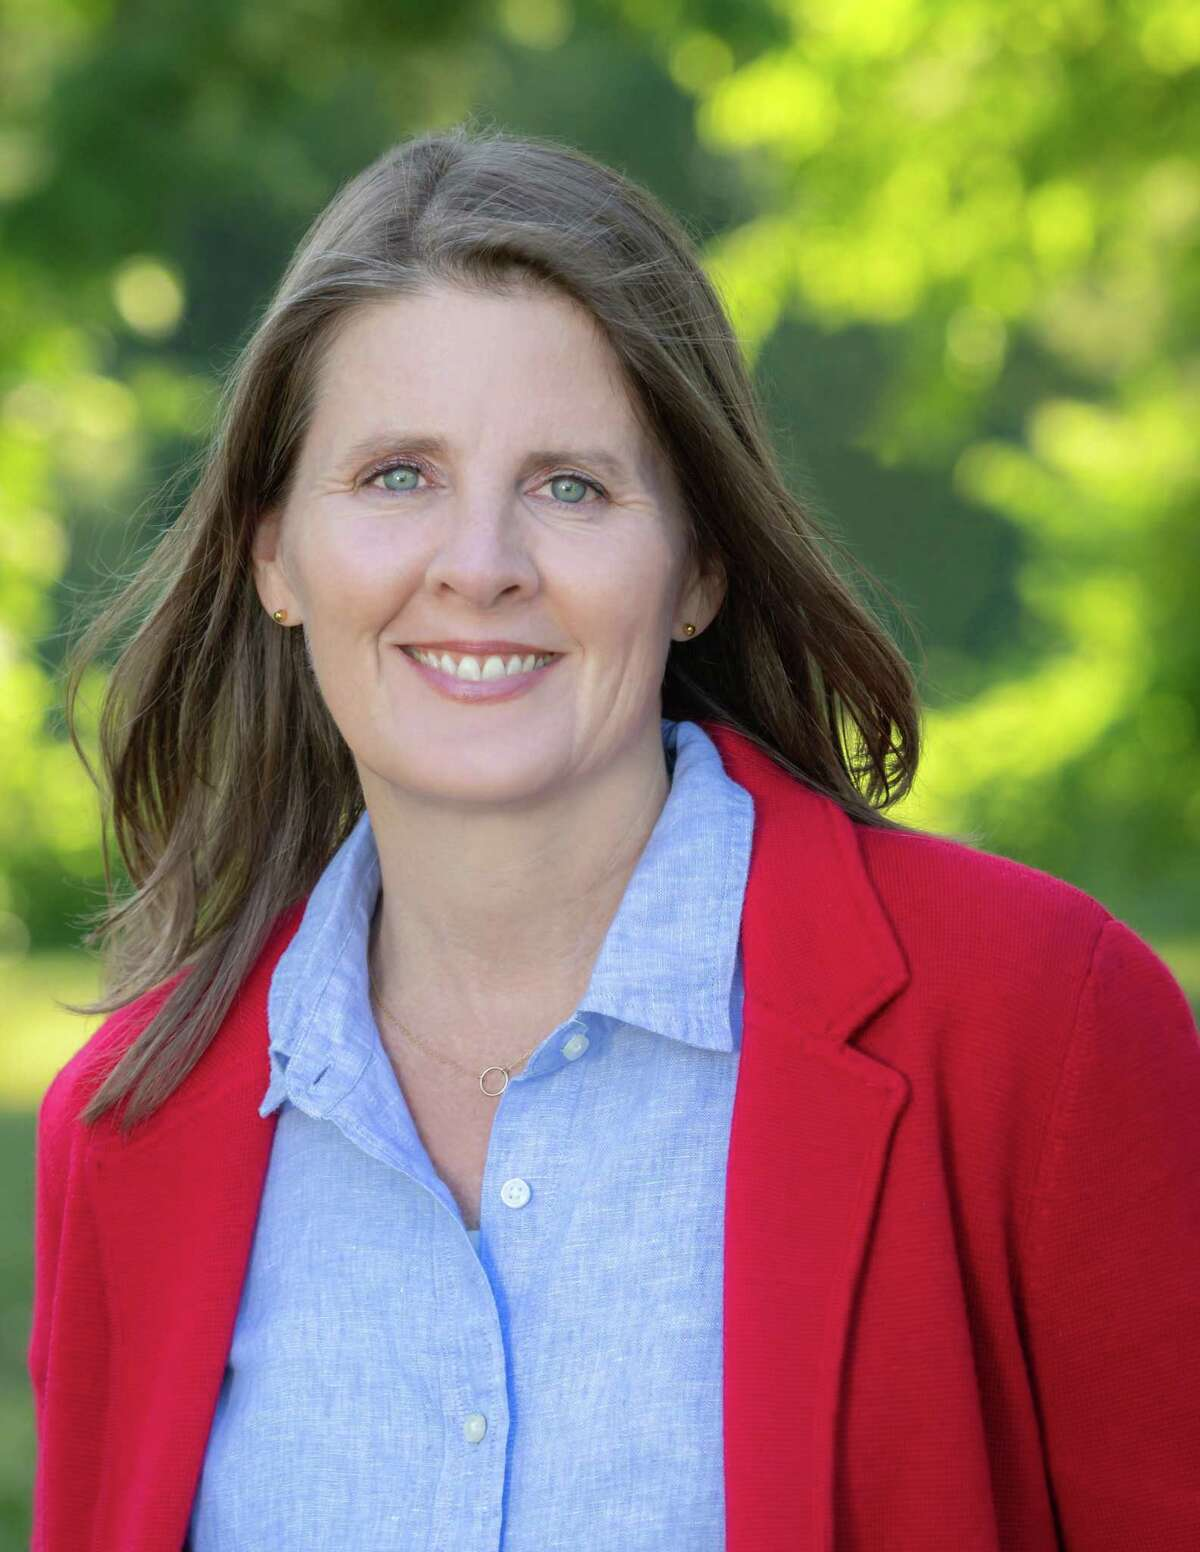 The head of the Housing Authority of New Canaan writes this letter to show support for the Republican candidate for the Connecticut state Senate, Kim Healy, (pictured), for the state's 26th Senate District.